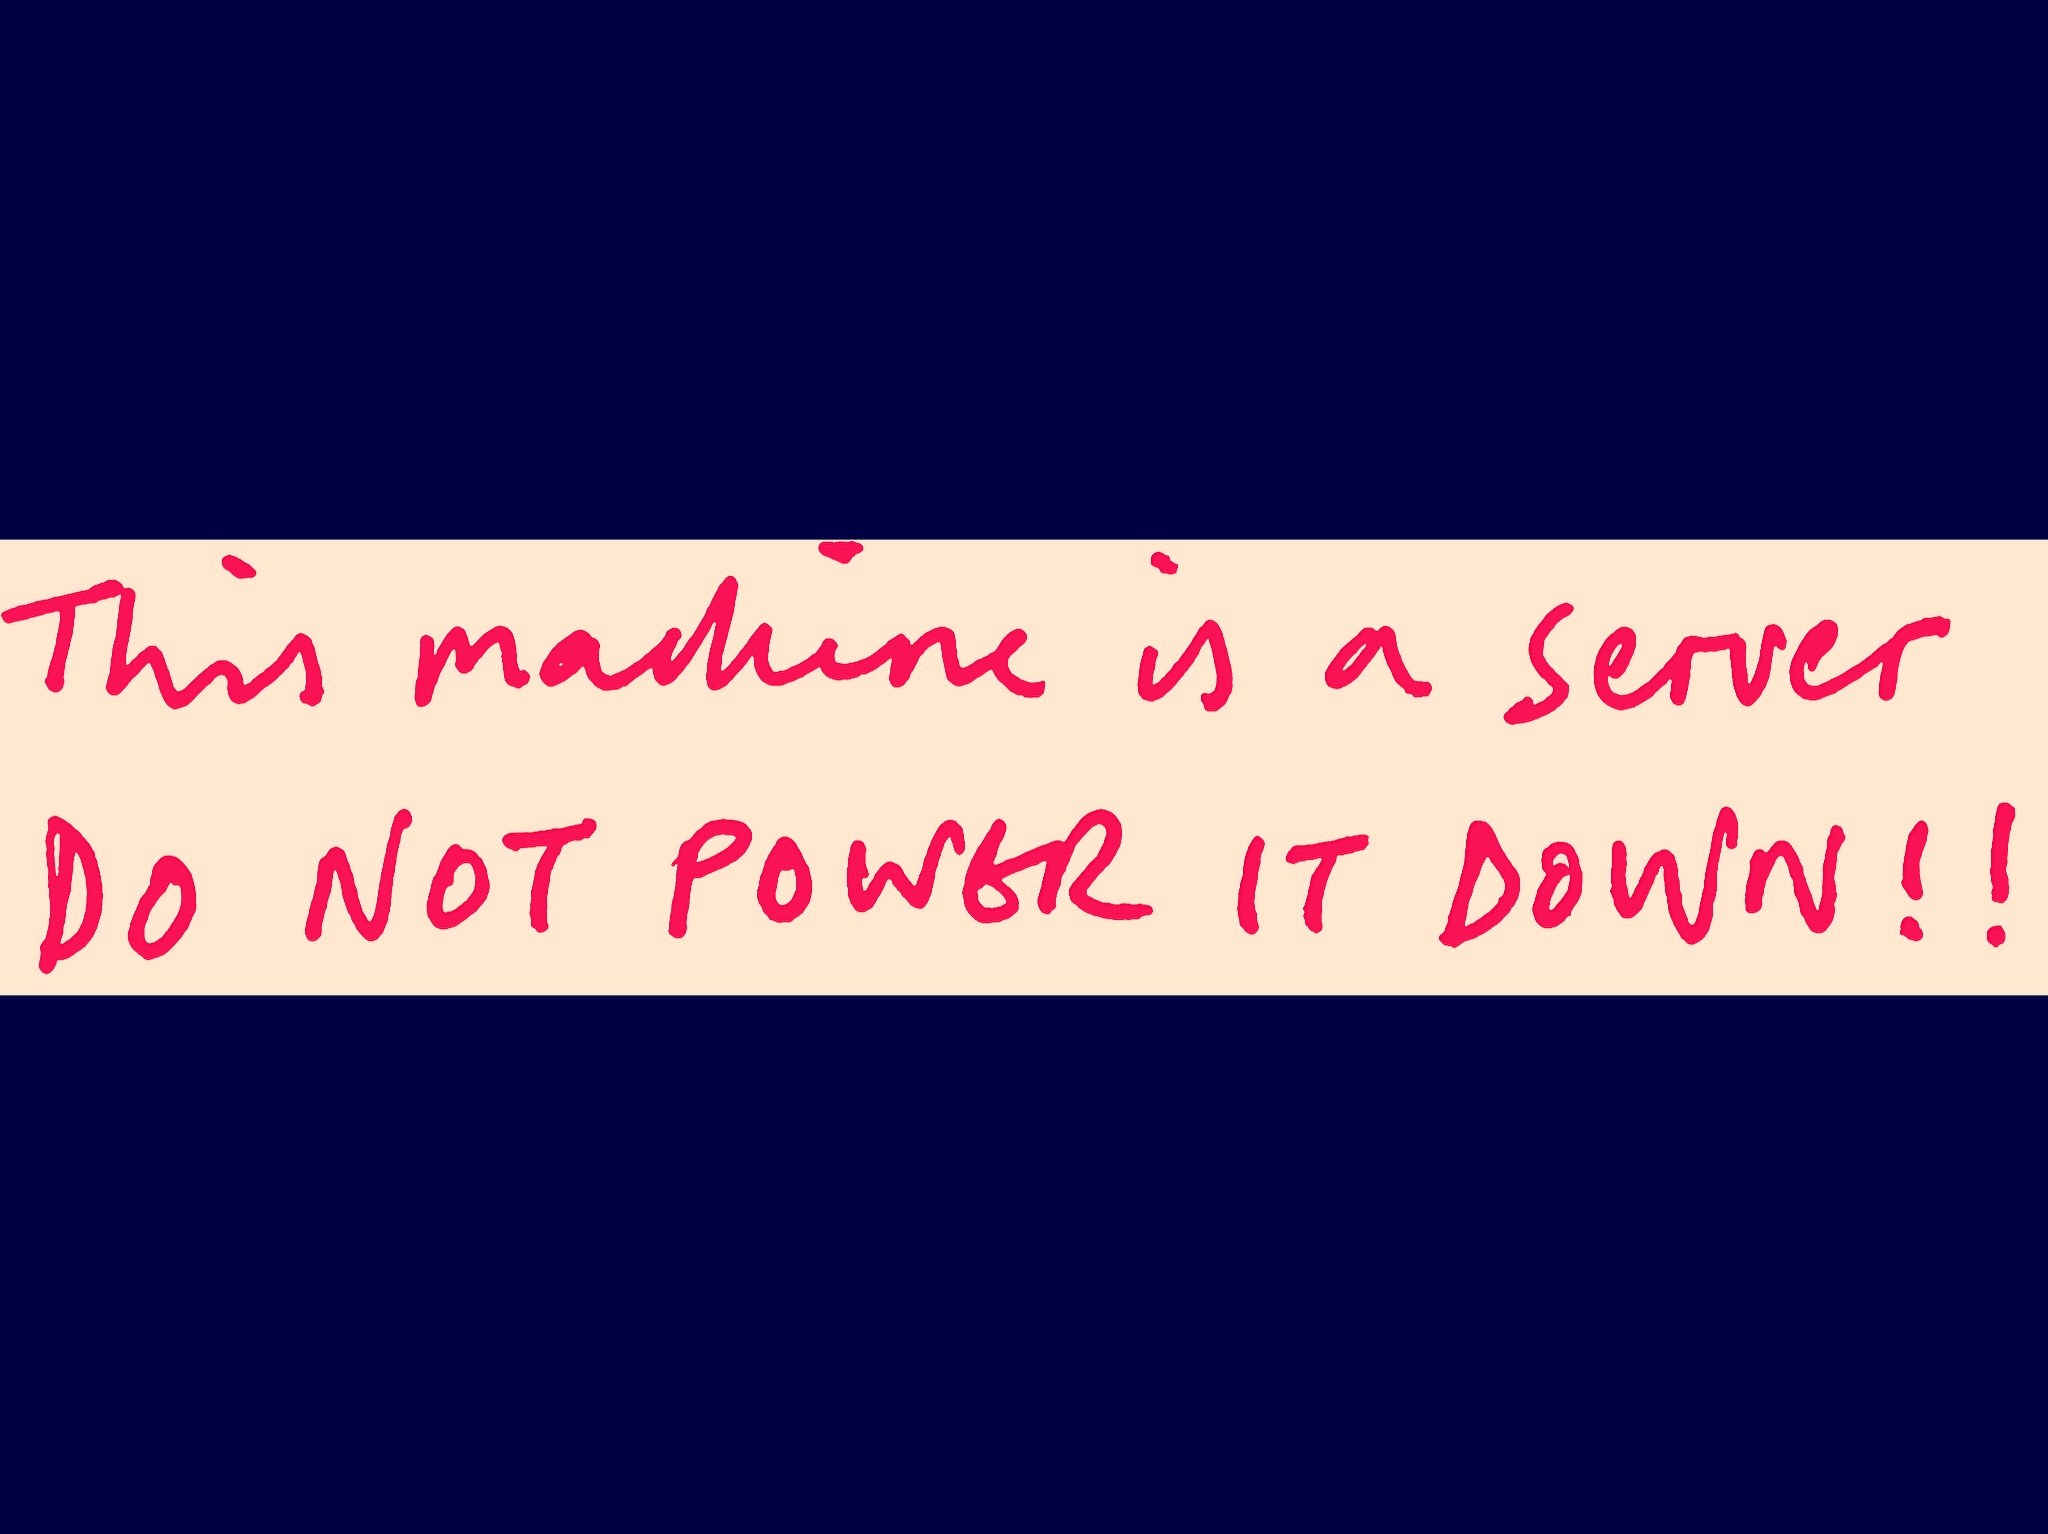 Do Not Power Down note, Keith Dodds after Tim Berners Lee